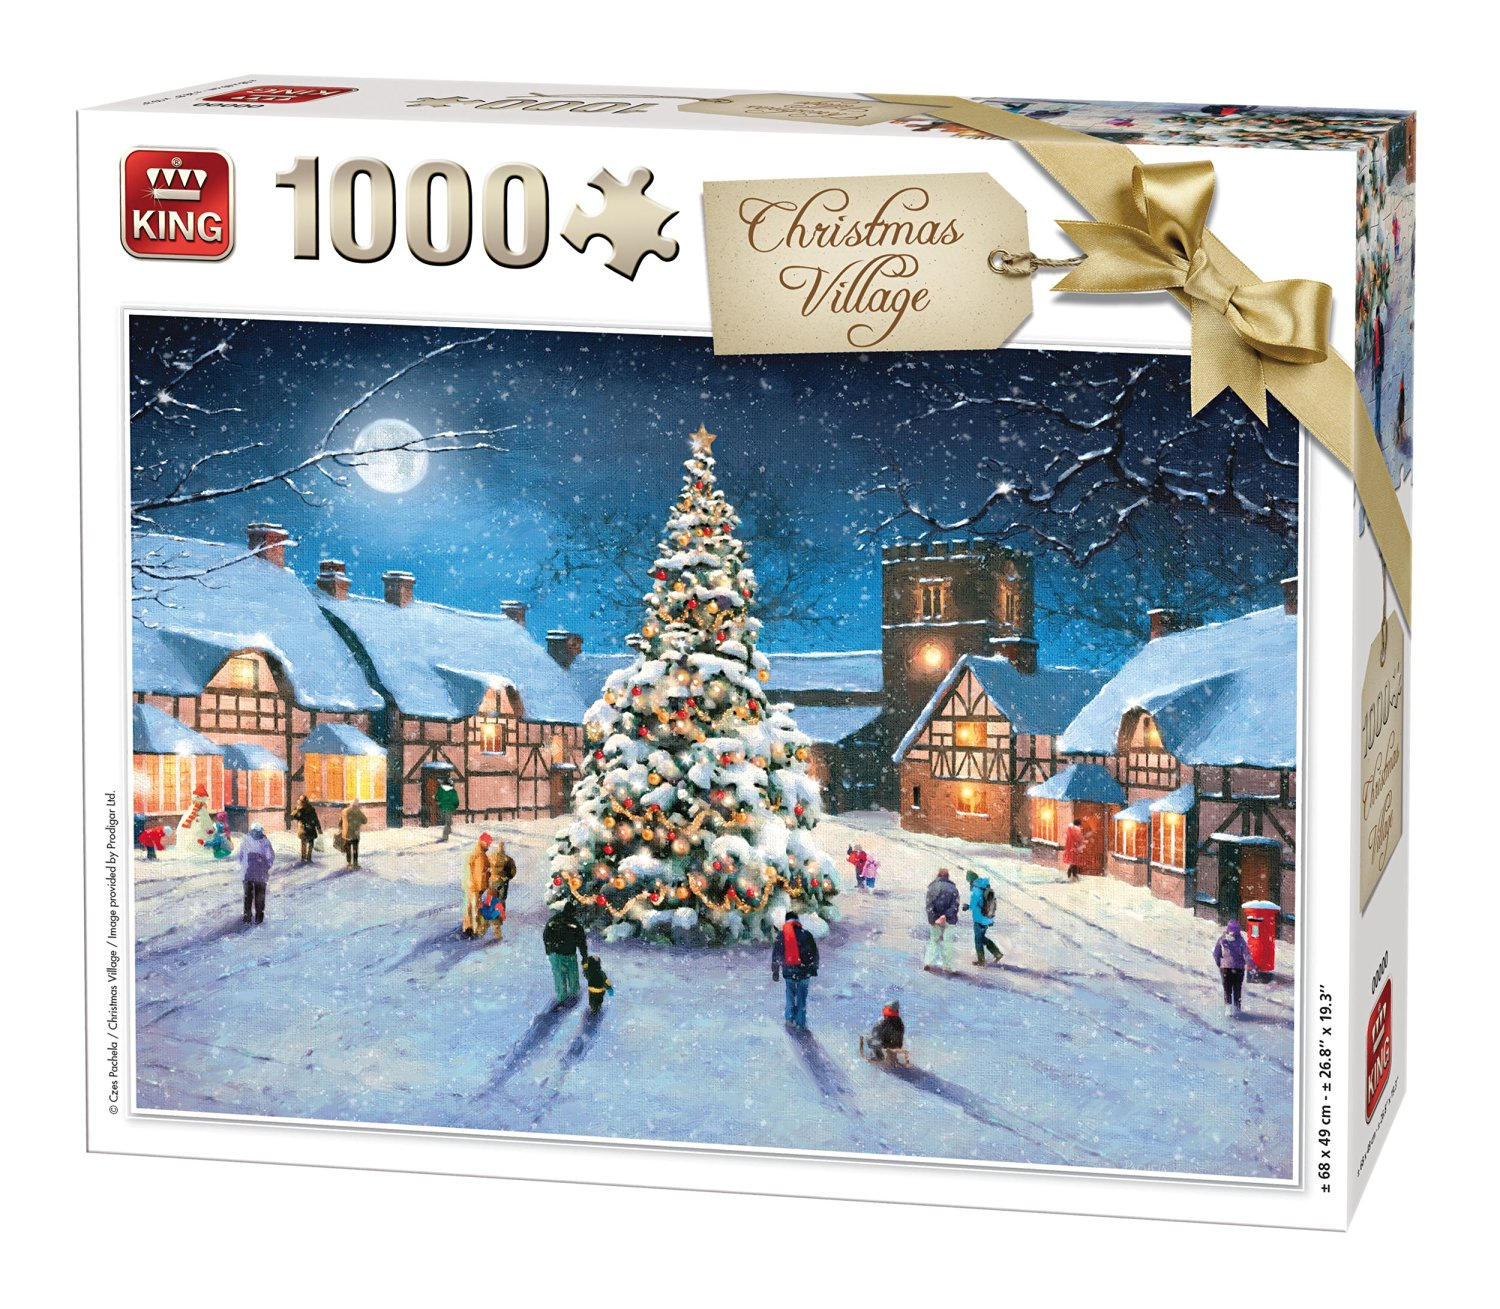 Puzzle Christmas Village King-Puzzle-05610 1000 pieces Jigsaw ...